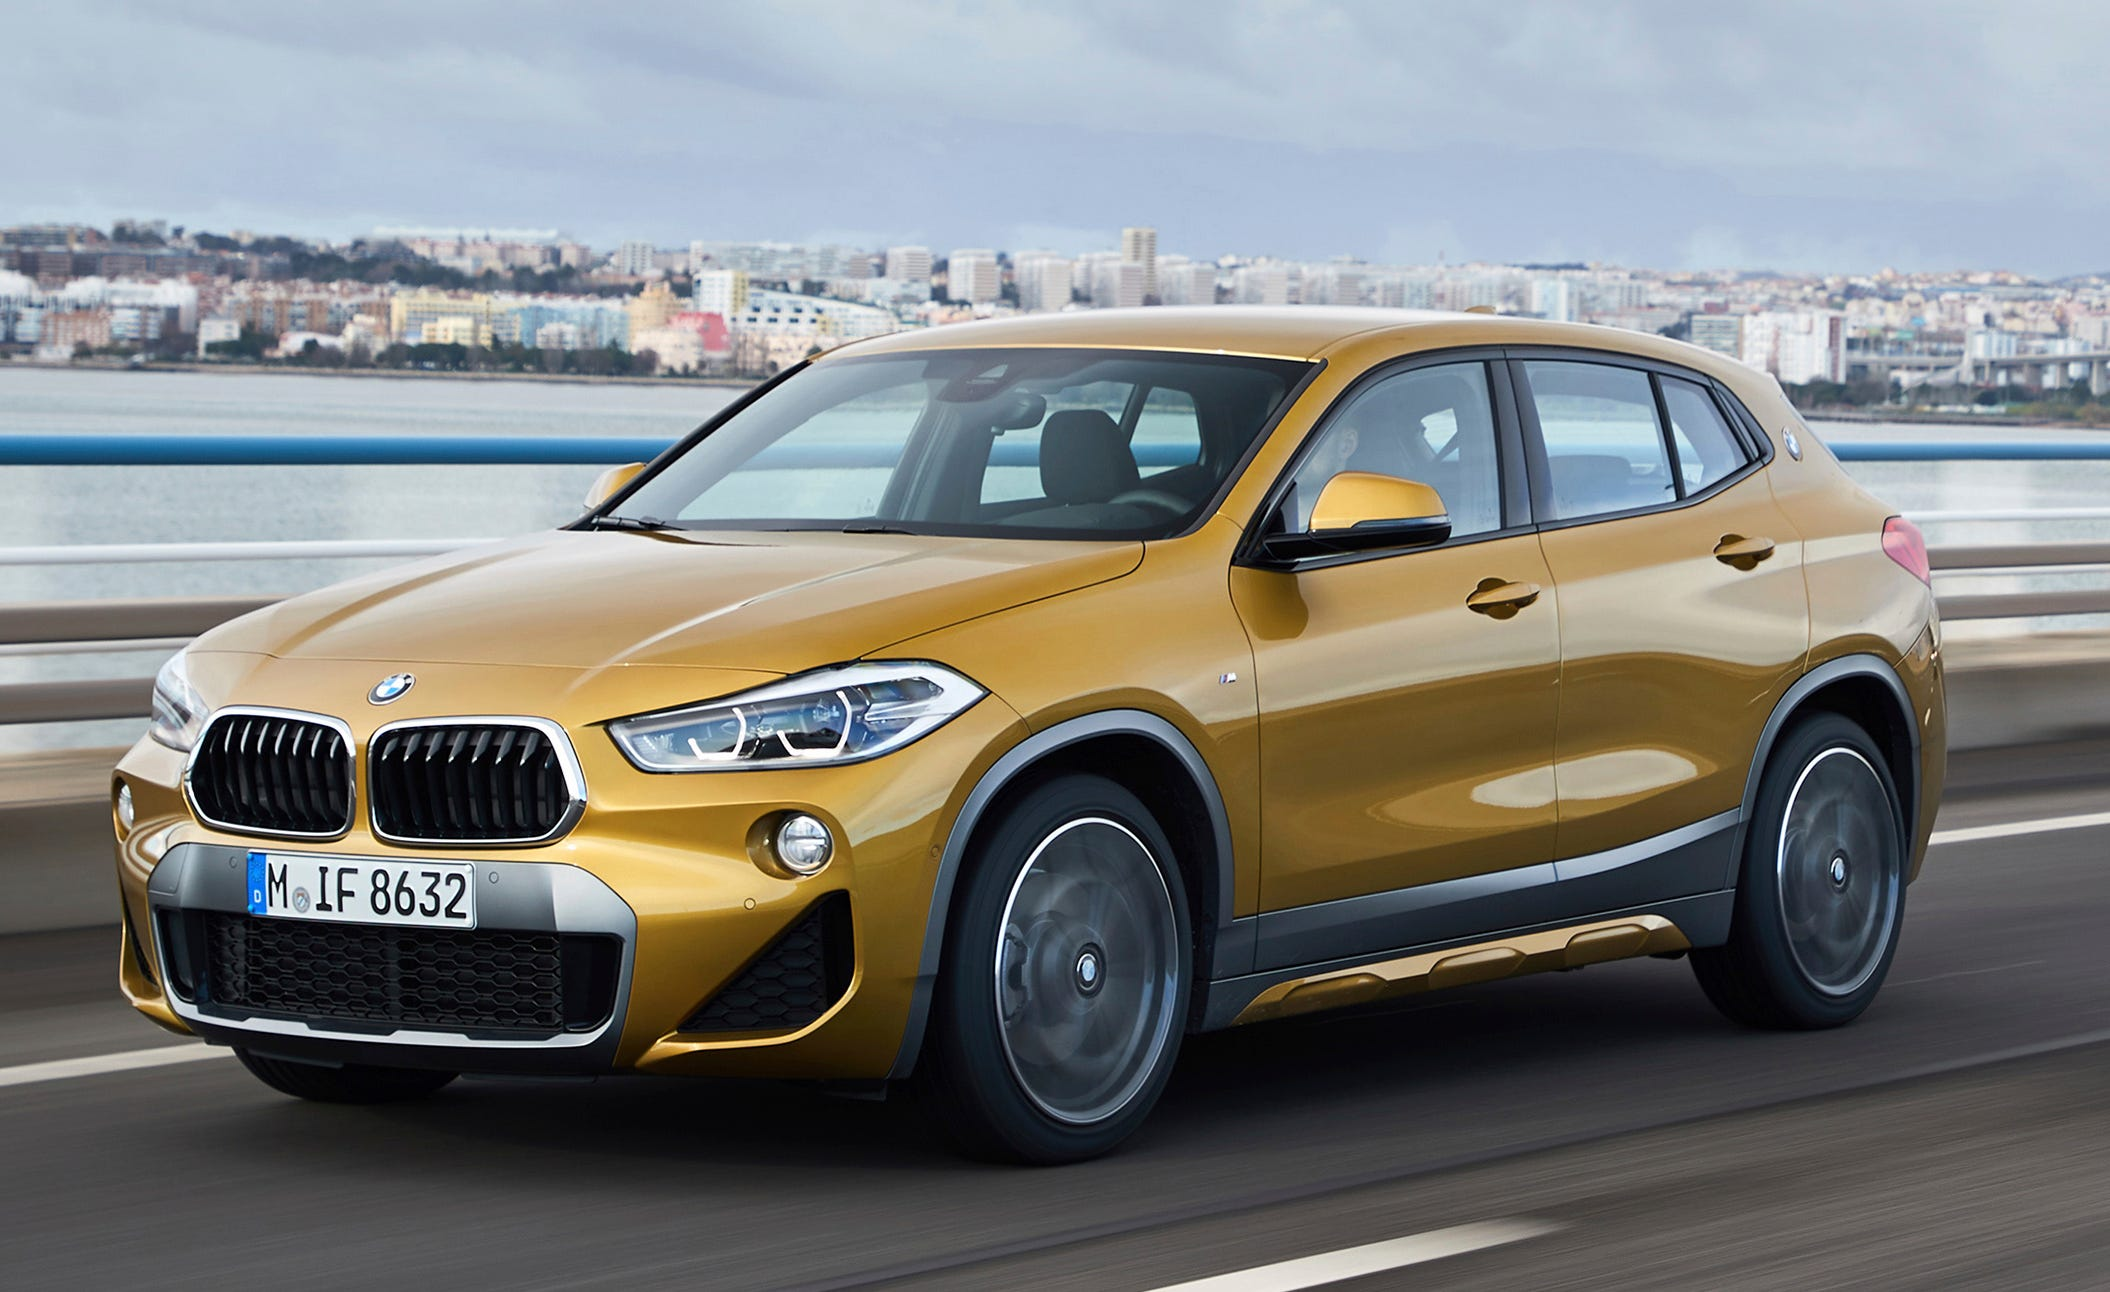 This undated photo provided by BMW shows the 2019 BMW X2. The X2 gives up both cargo space and rear headroom compared to the related X1, and it comes with a higher price tag: $37,395, versus the X1's $34,895 starting price. (Fabian Kirchbauer Photography/BMW of America via AP)